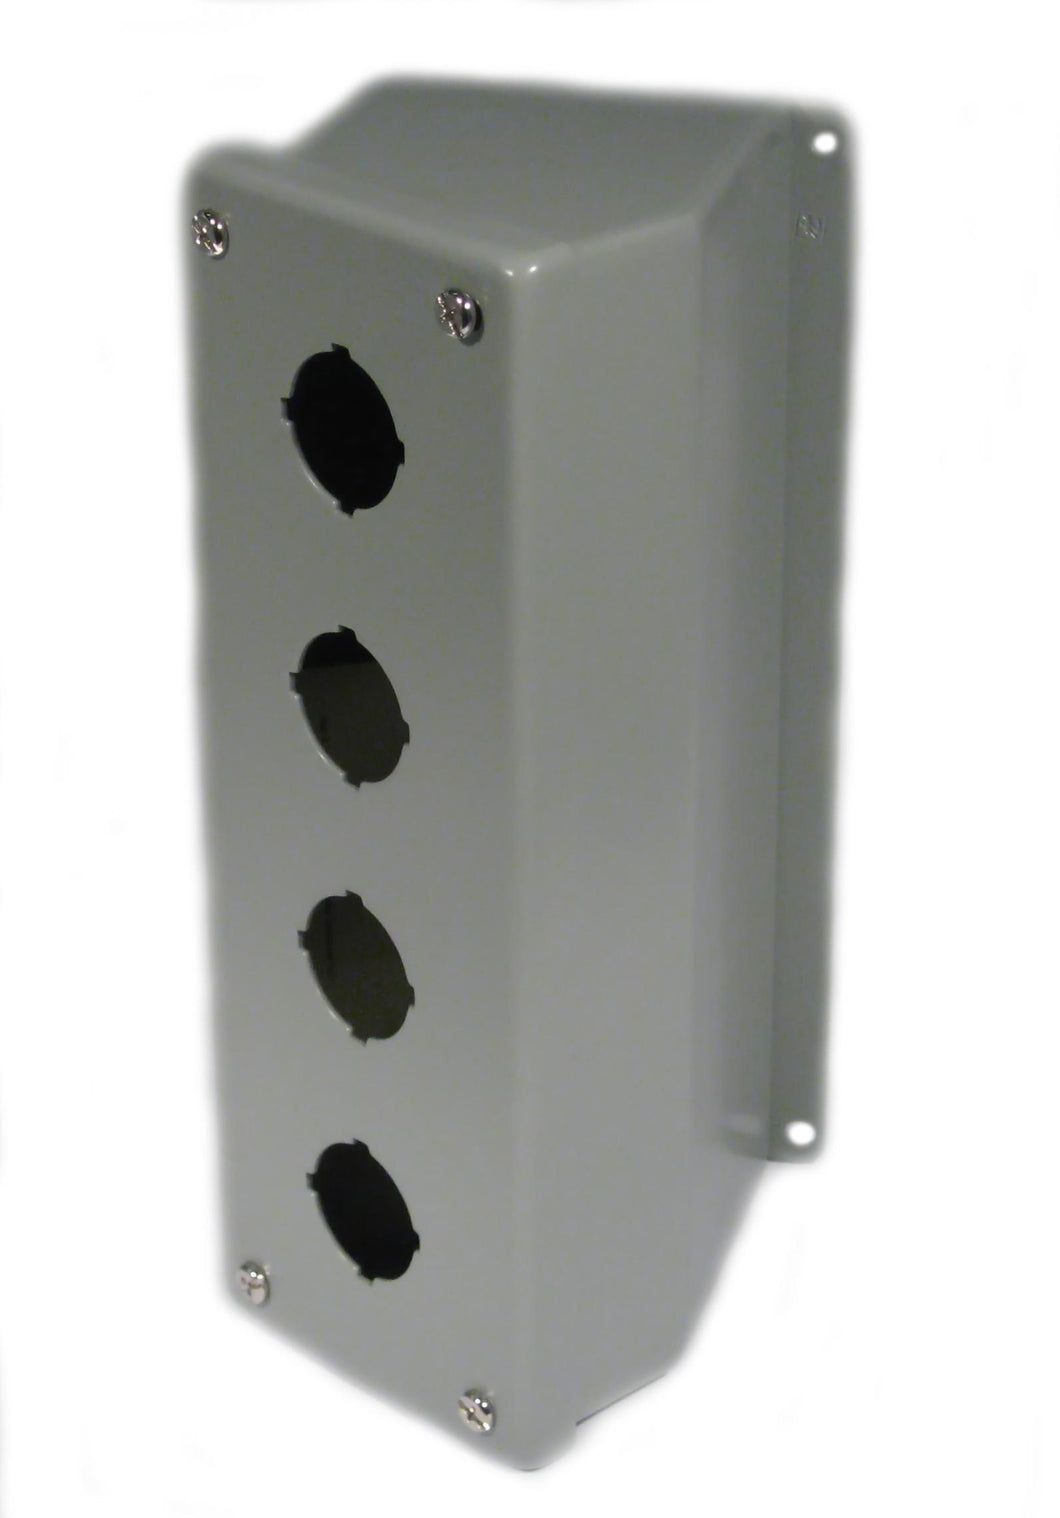 nVent Hoffman E4PBA Enclosure, Pilot Device, 30mm, 4 Hole, Sloped Front, Steel, Type 12 nVent Hoffman E4PBA